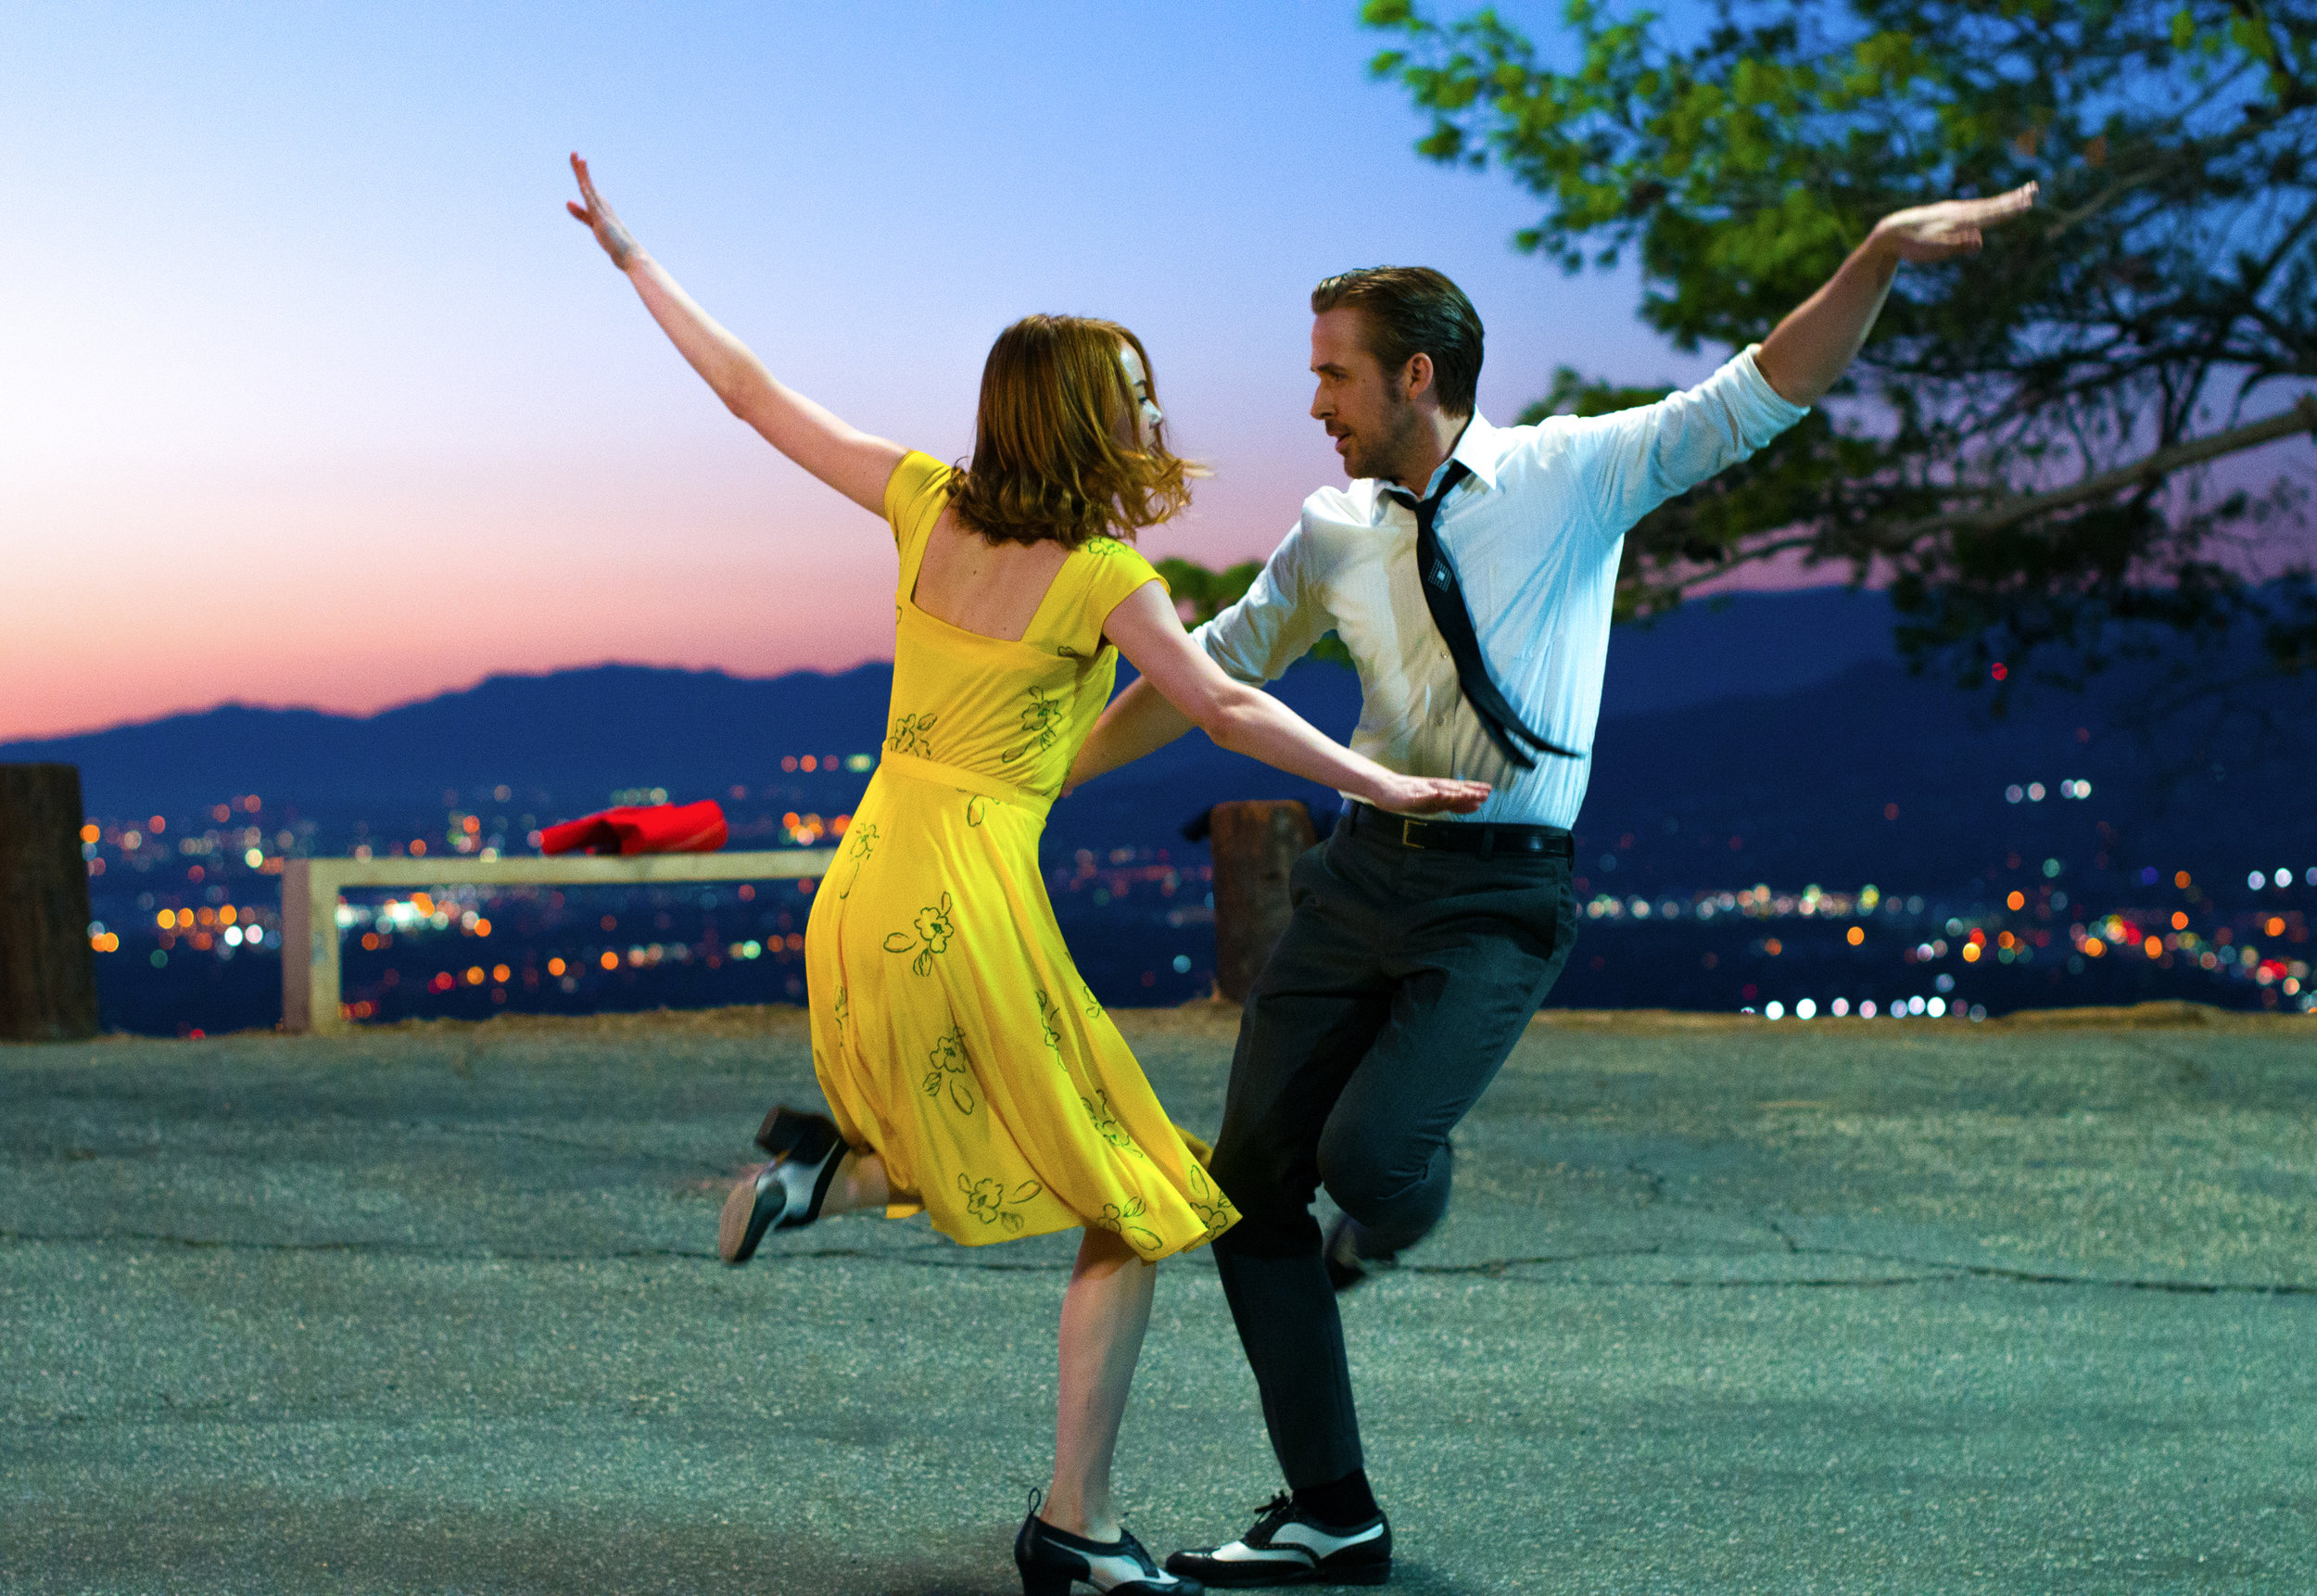 La La Land - Amanda welcomes back return guests, Kayla and Kristin, to discuss record Oscar nominee, La La Land. Kayla is a bit disappointed with the movie, Kristin thinks film might be a bit too self-referential, but it wins her over by the end, and Amanda can't wait to see Dunkirk.